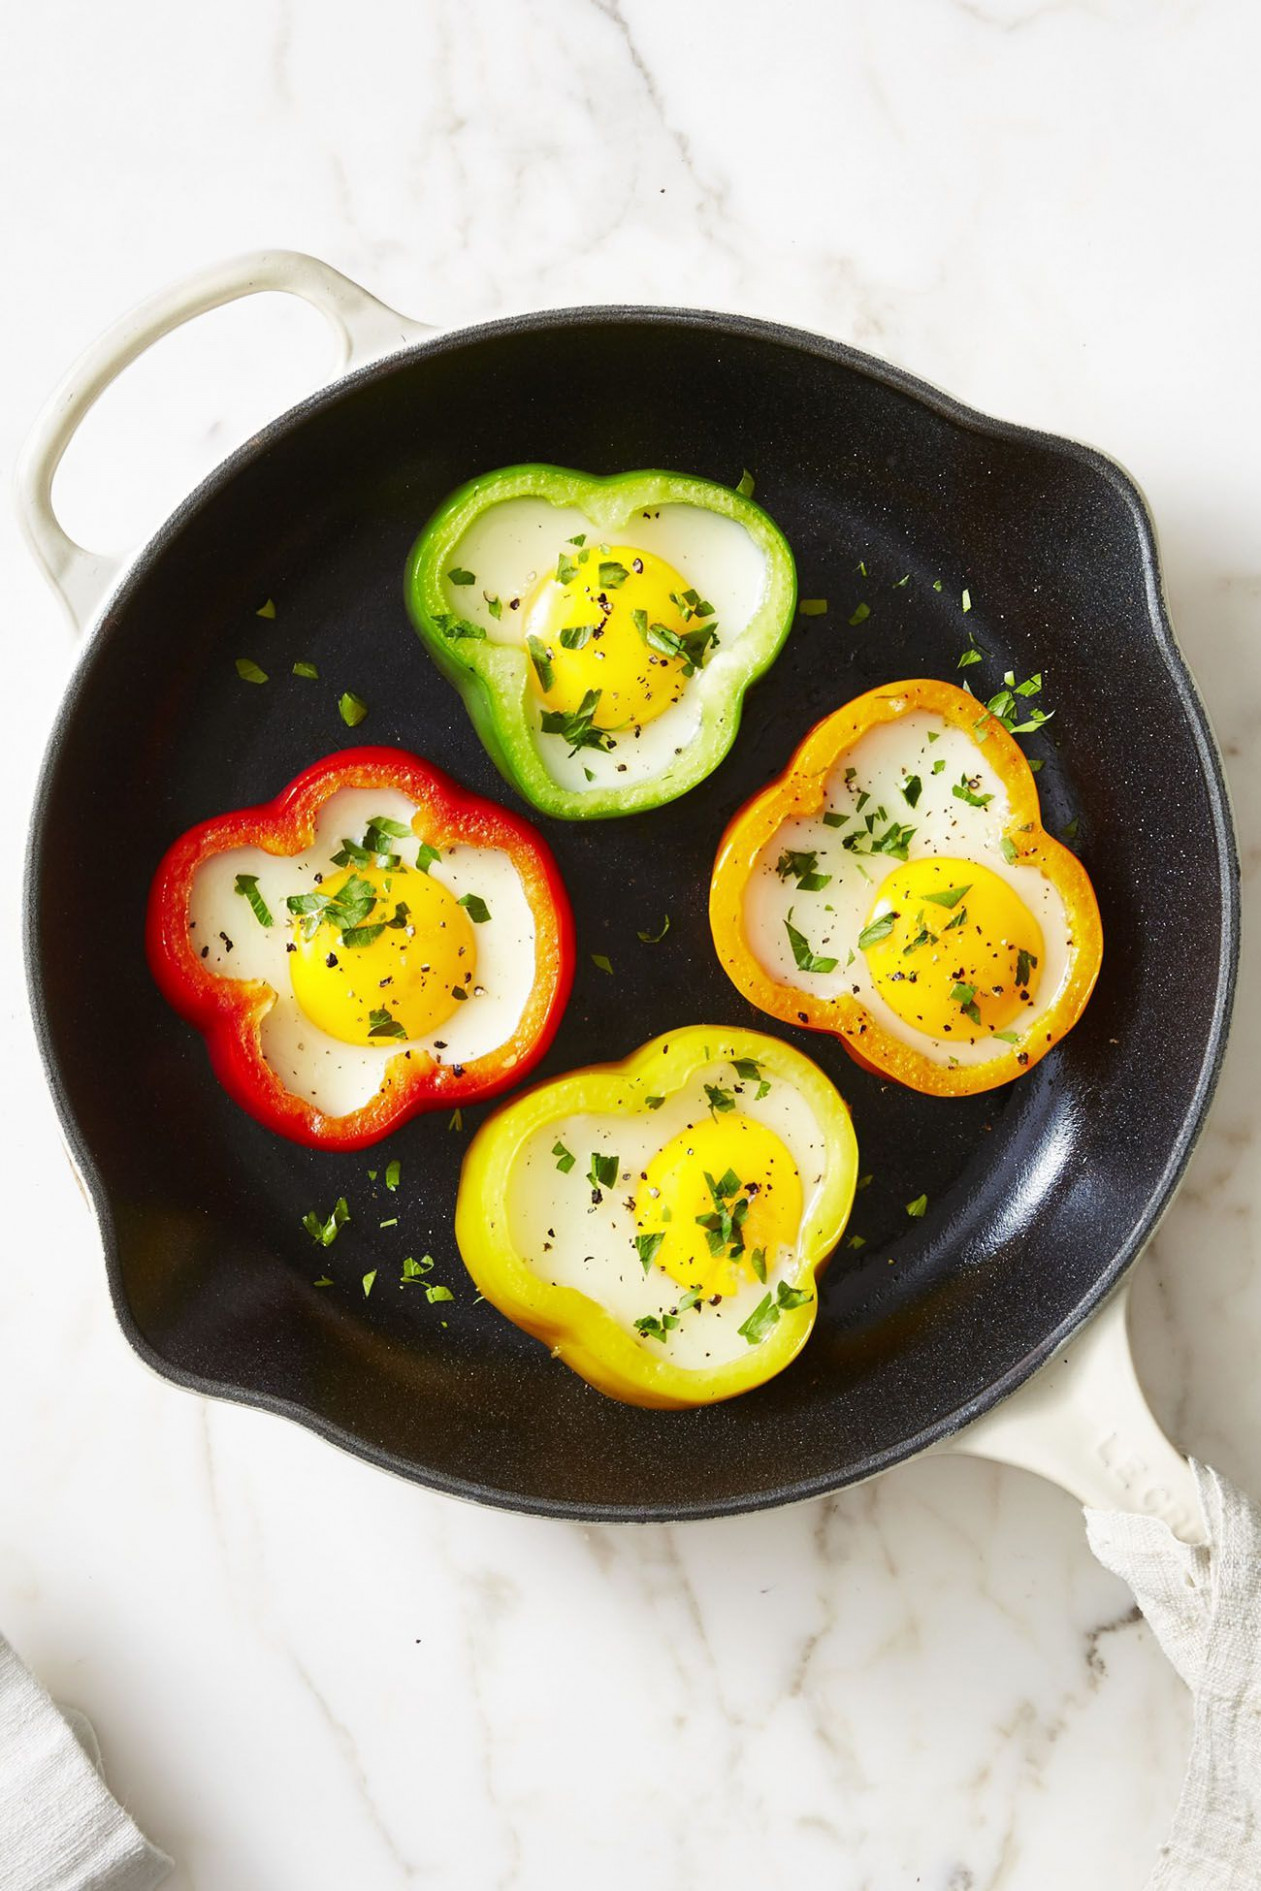 15 Easy Healthy Breakfast Ideas - Recipes for Quick and ..